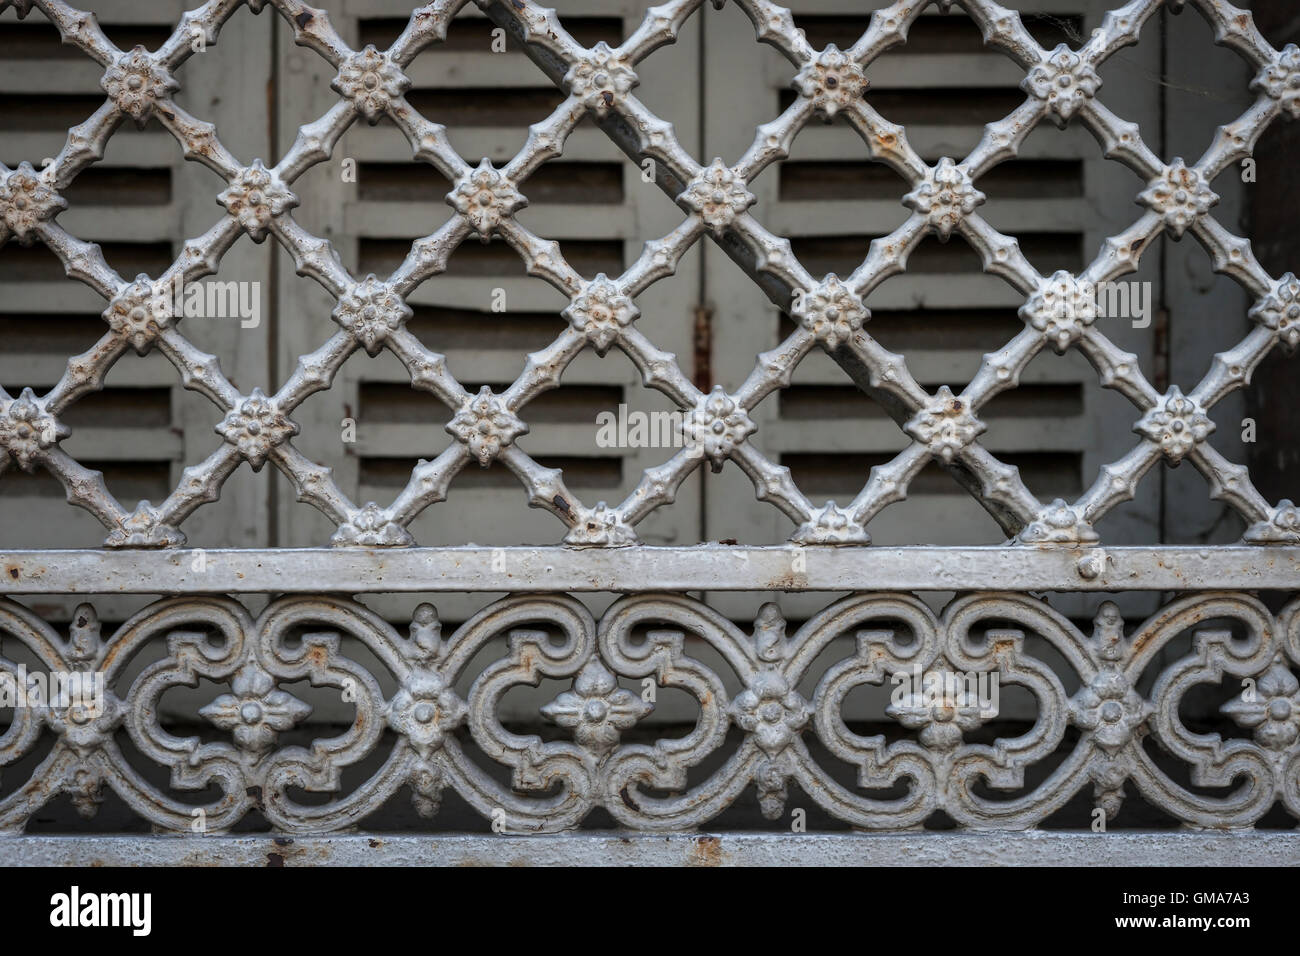 Window Grill High Resolution Stock Photography And Images Alamy